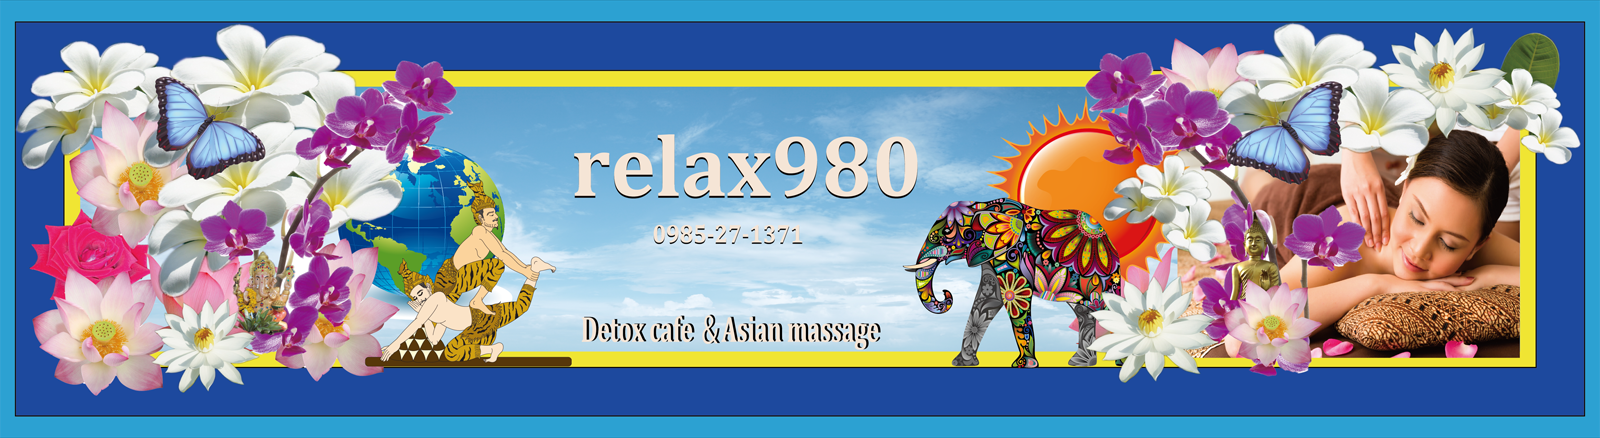 relax980